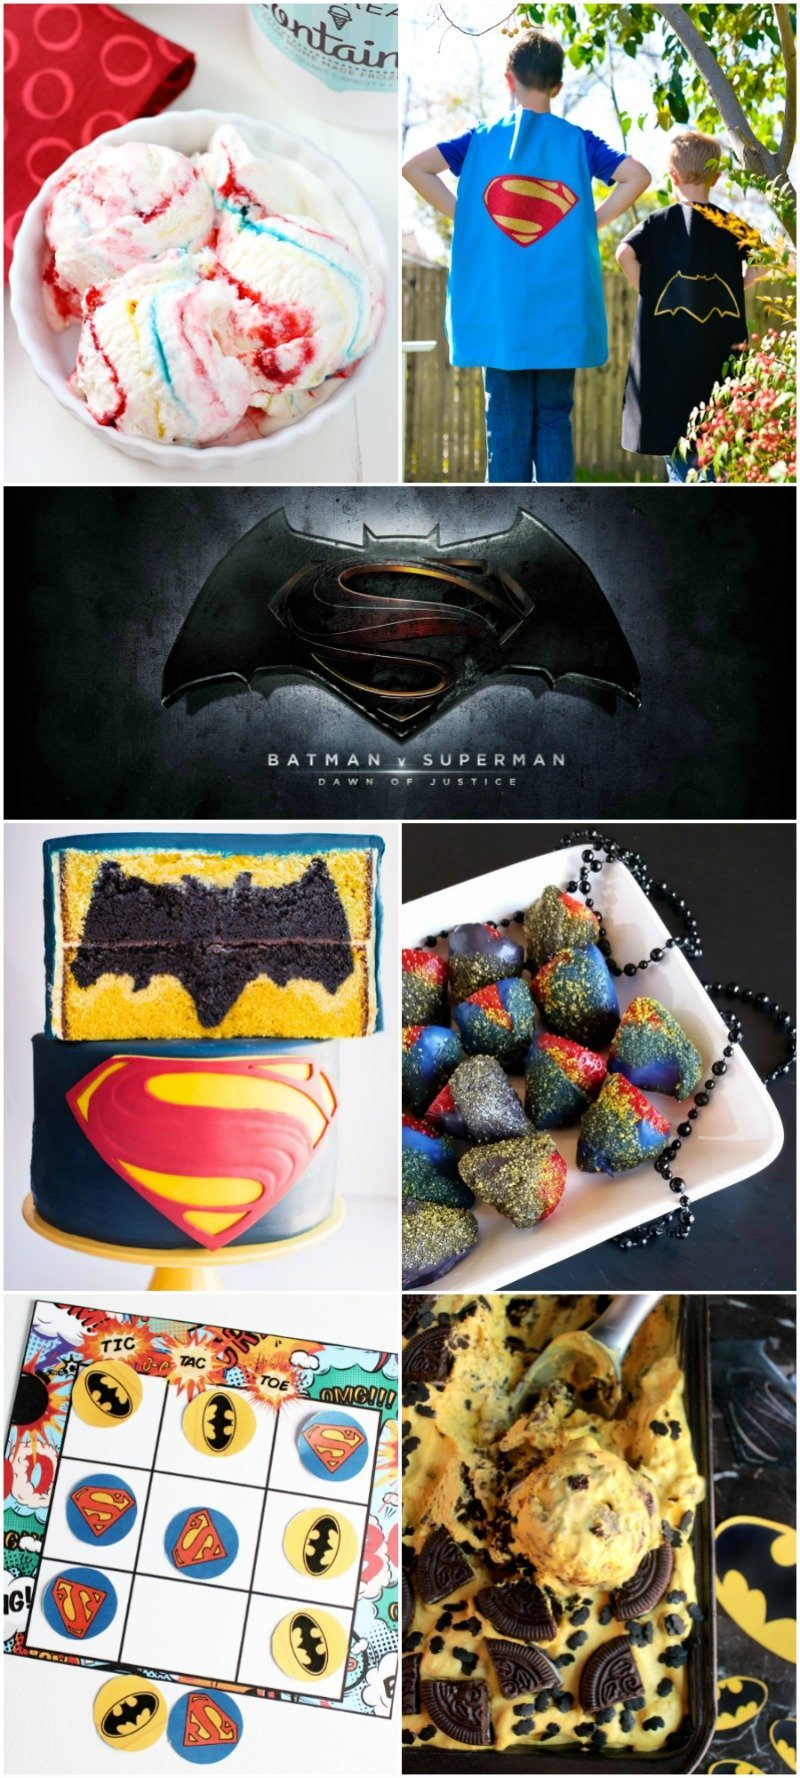 Batman v Superman Recipe and Craft Ideas